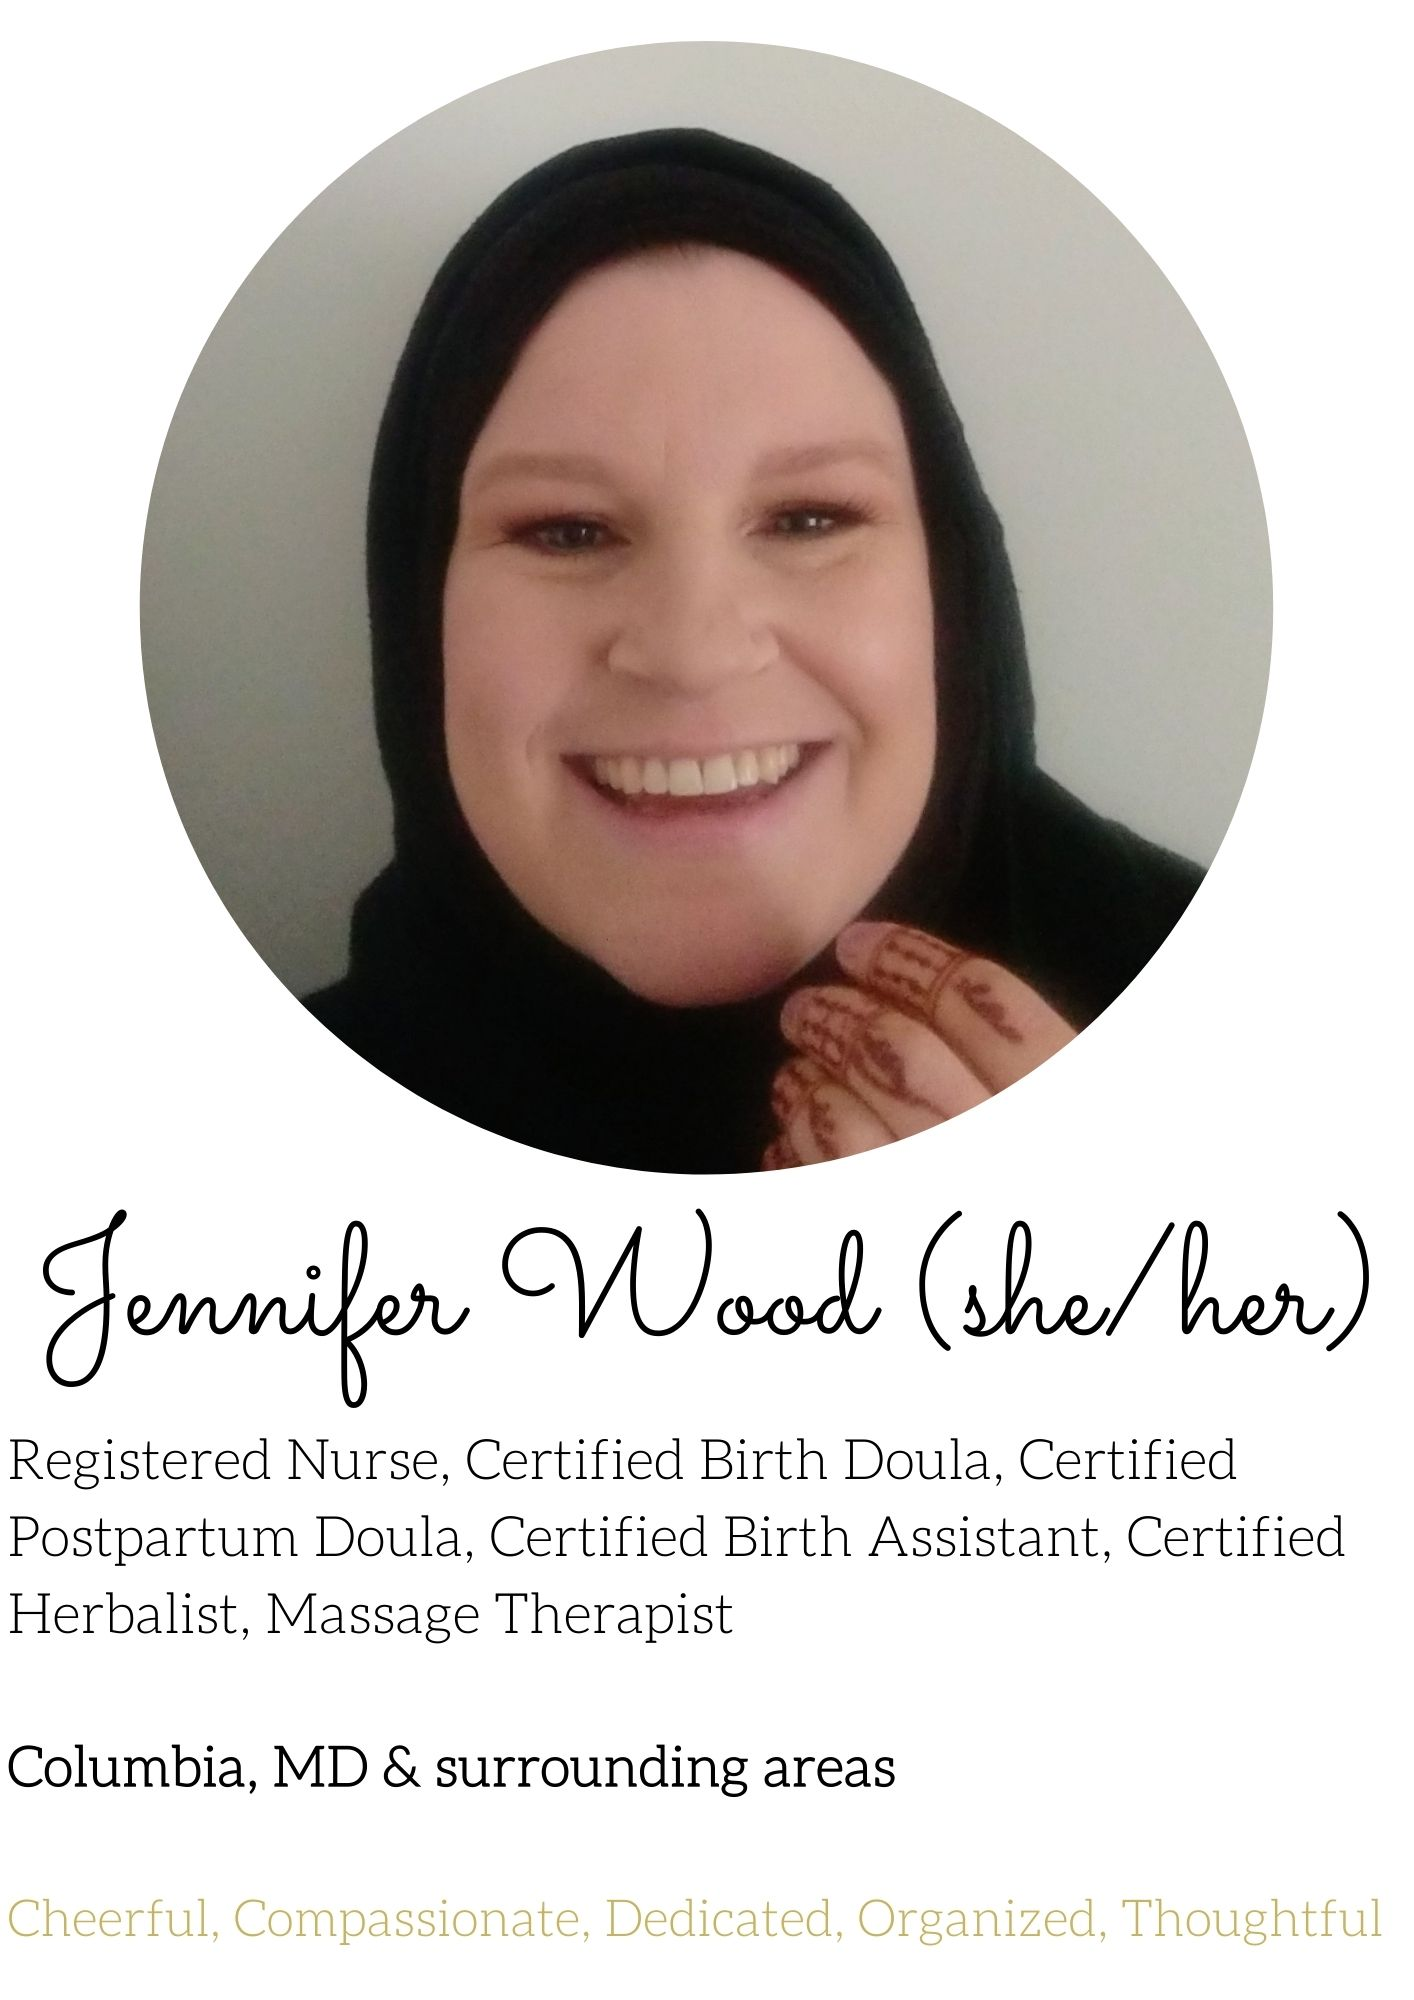 Jennifer Wood she/her registered nurse, certified birth doula, certified postpartum doula, certified birth assistant, certified herbalist, massage therapist, Columbia Maryland and surrounding areas cheerful, compassionate, dedicated, organized, thoughtful